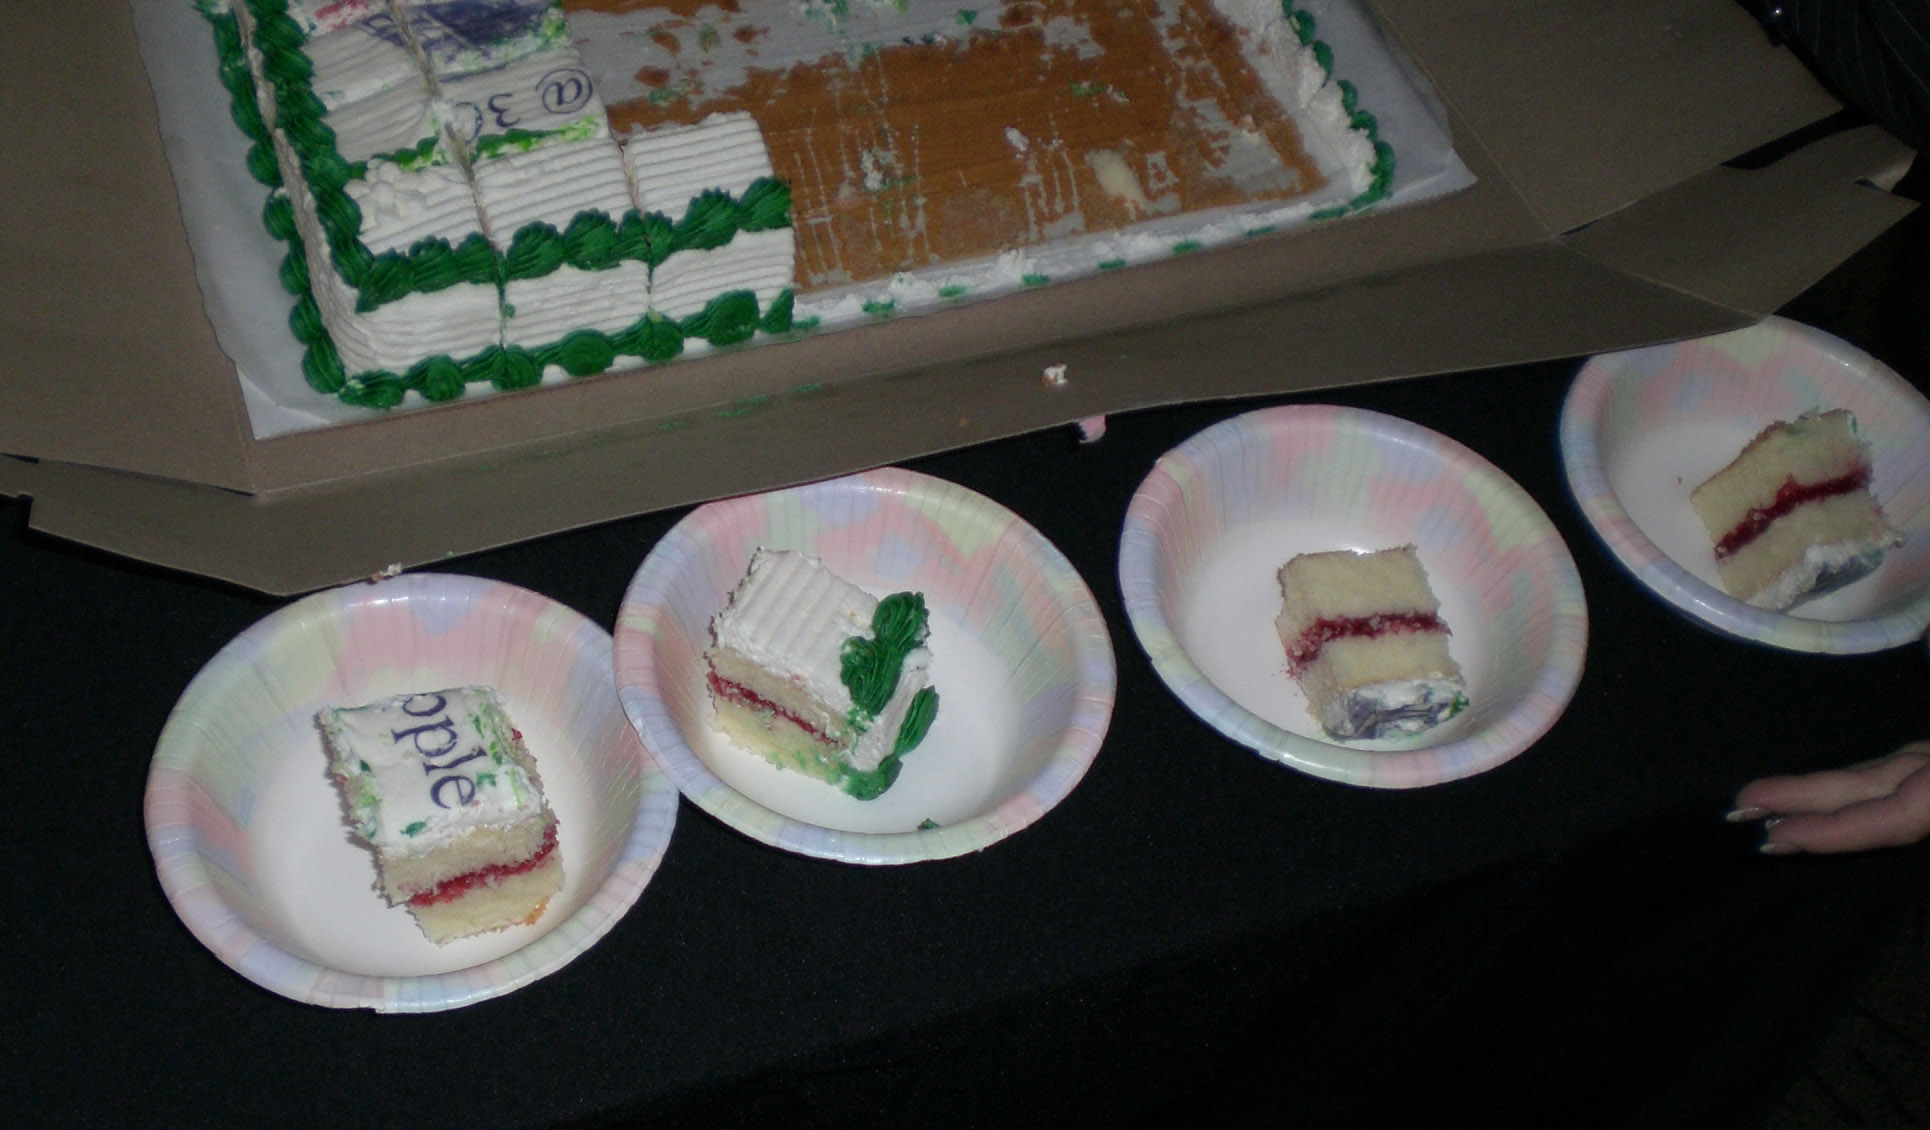 Cakes lined up